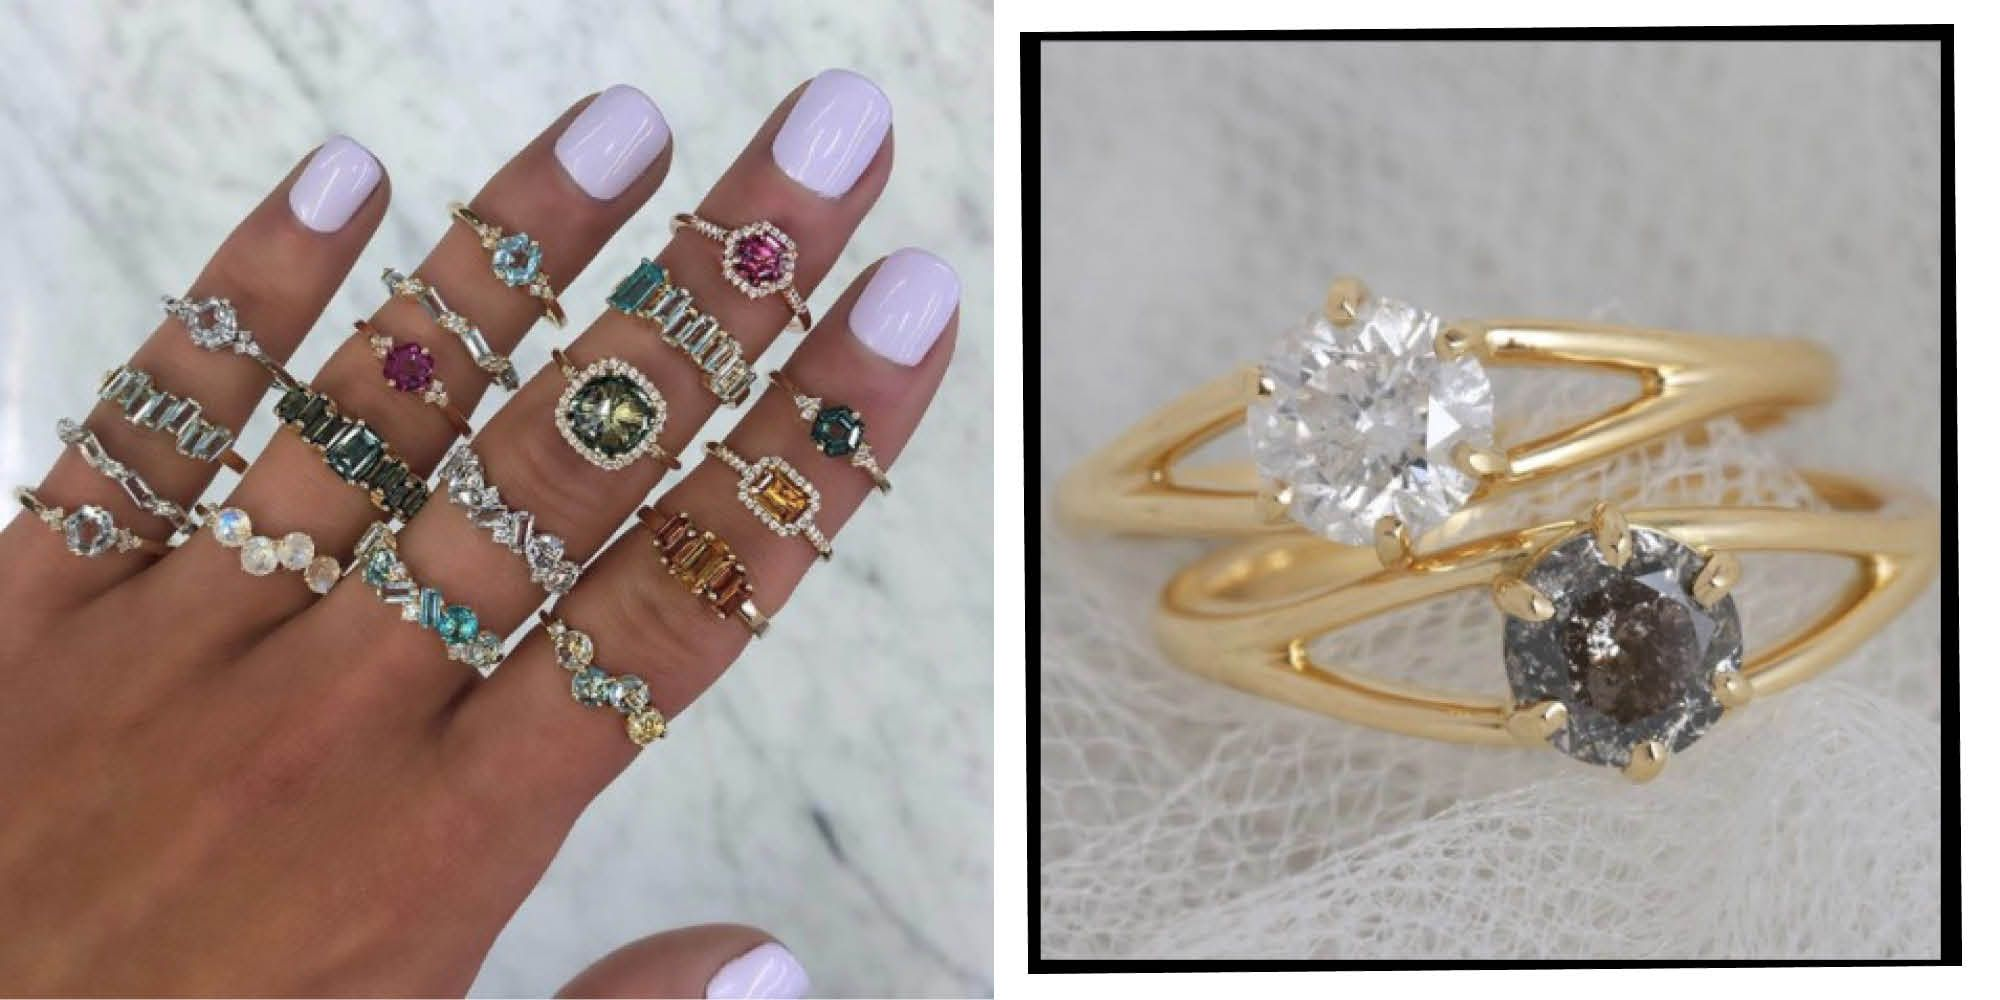 This is a graphic of Best Etsy Engagement Rings and Wedding Rings To Buy Now